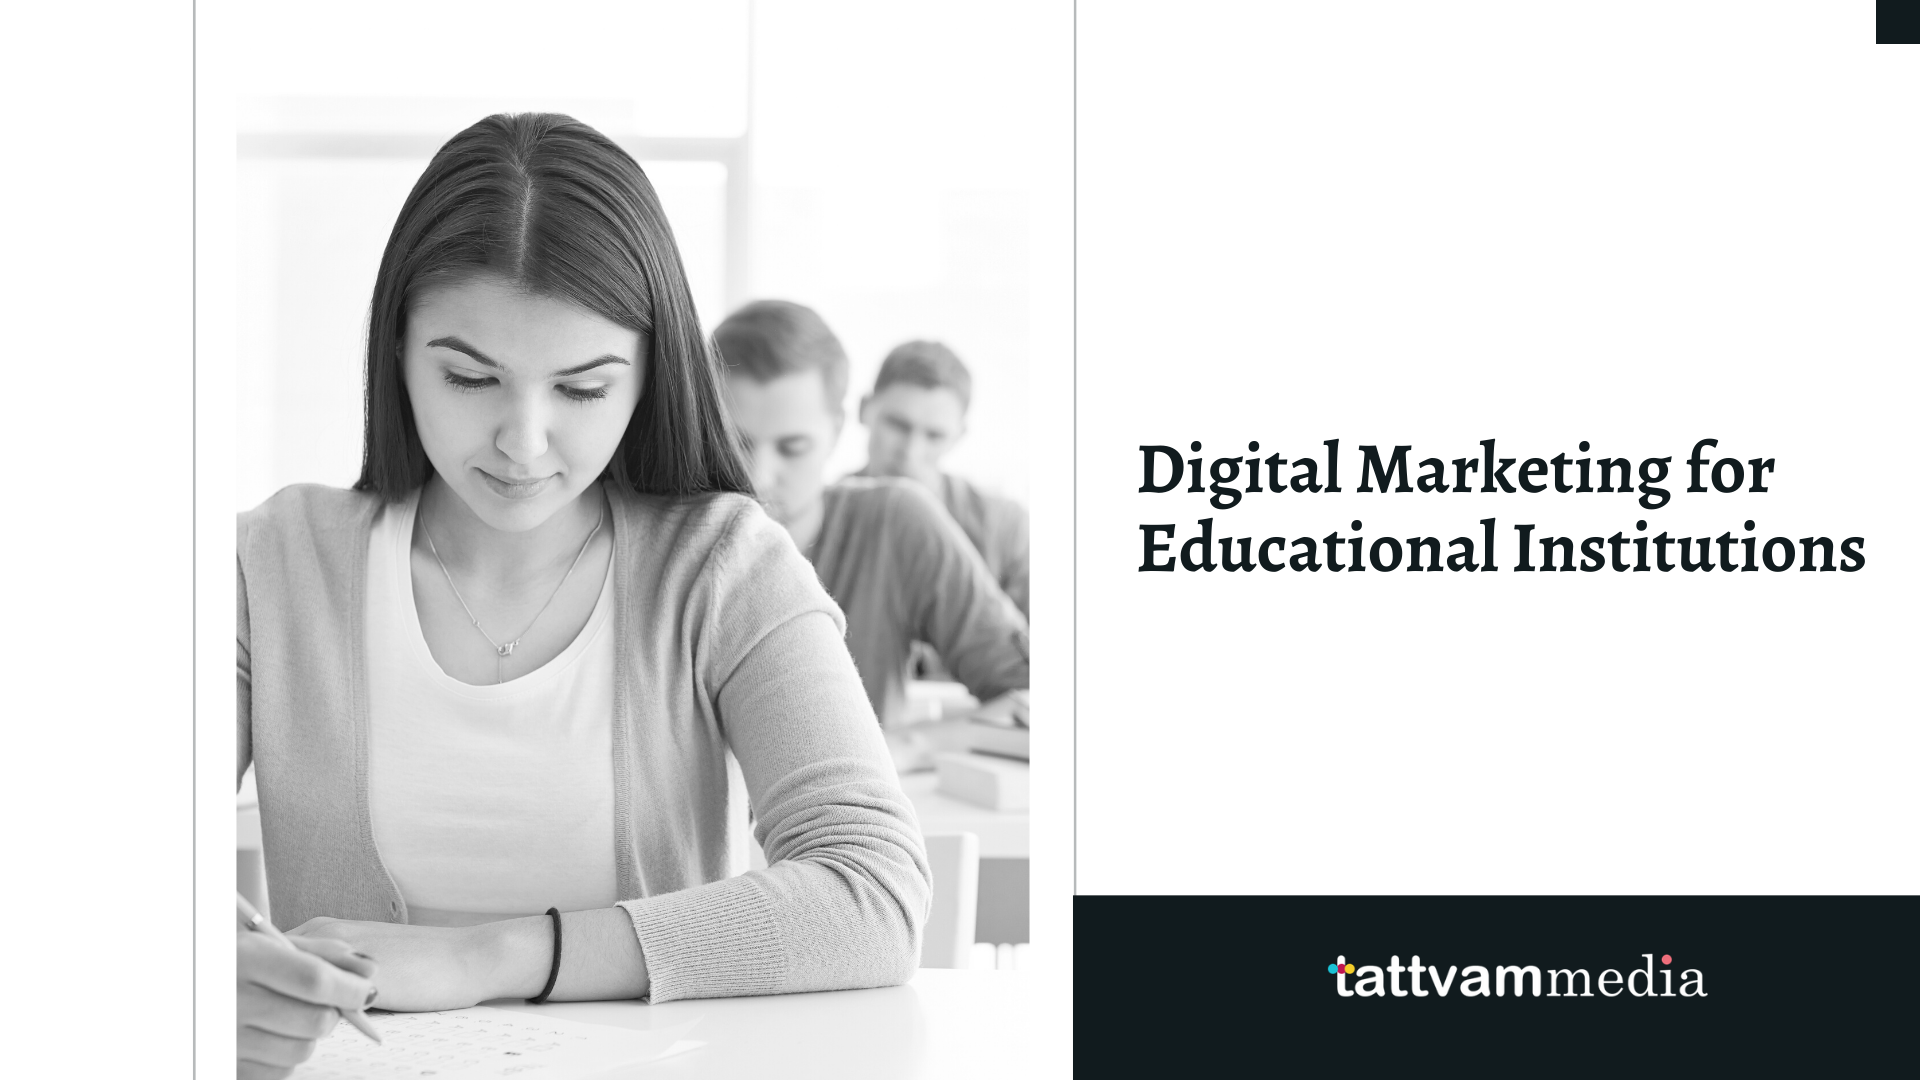 digital marketing for educational institutions